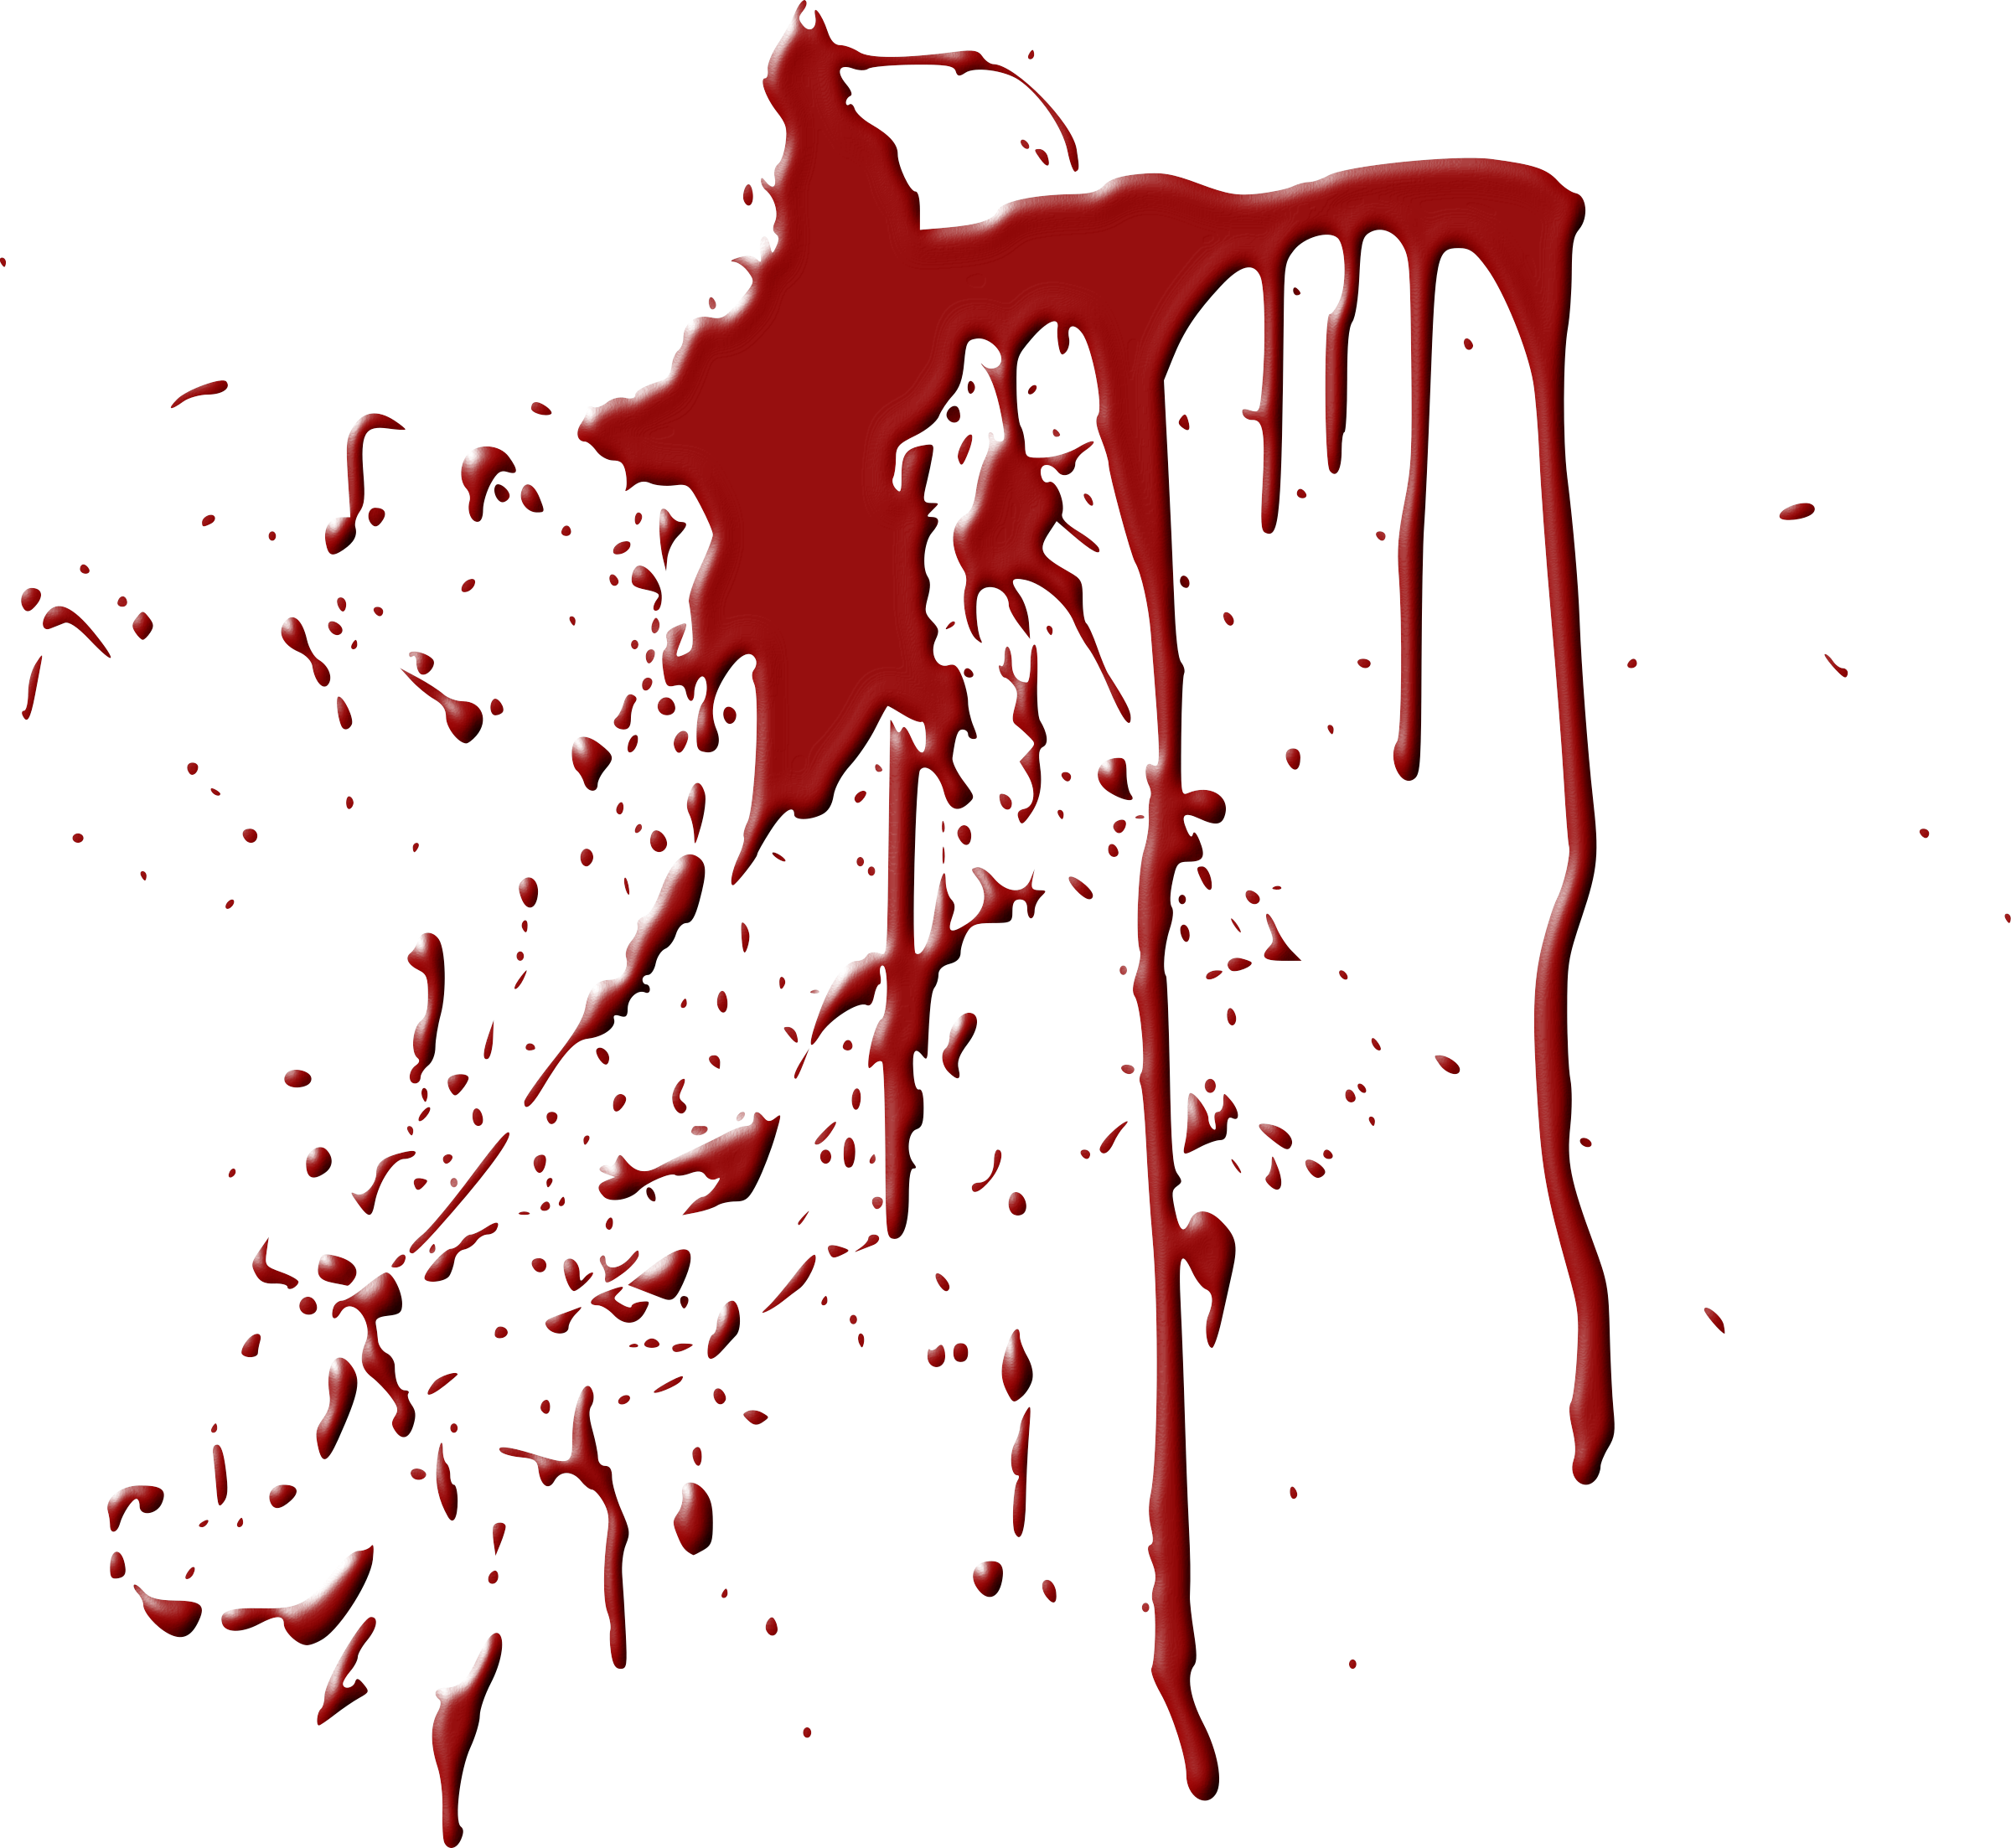 Blood spill png. Are you covered by